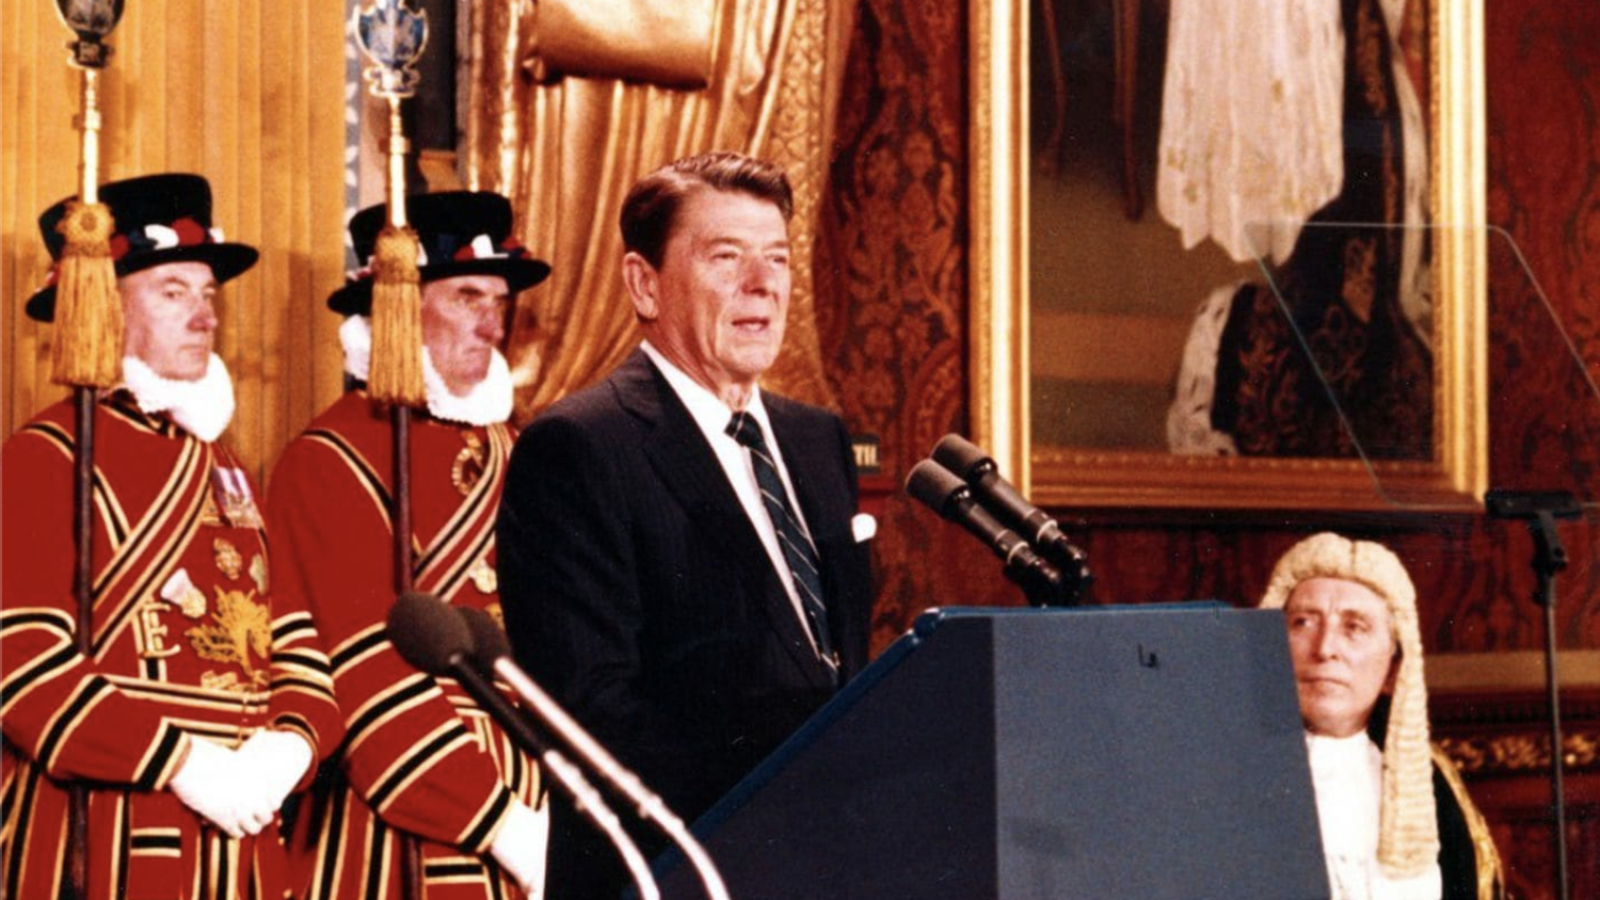 Ronald Reagan is standing at a podium and addresses the British parliament.